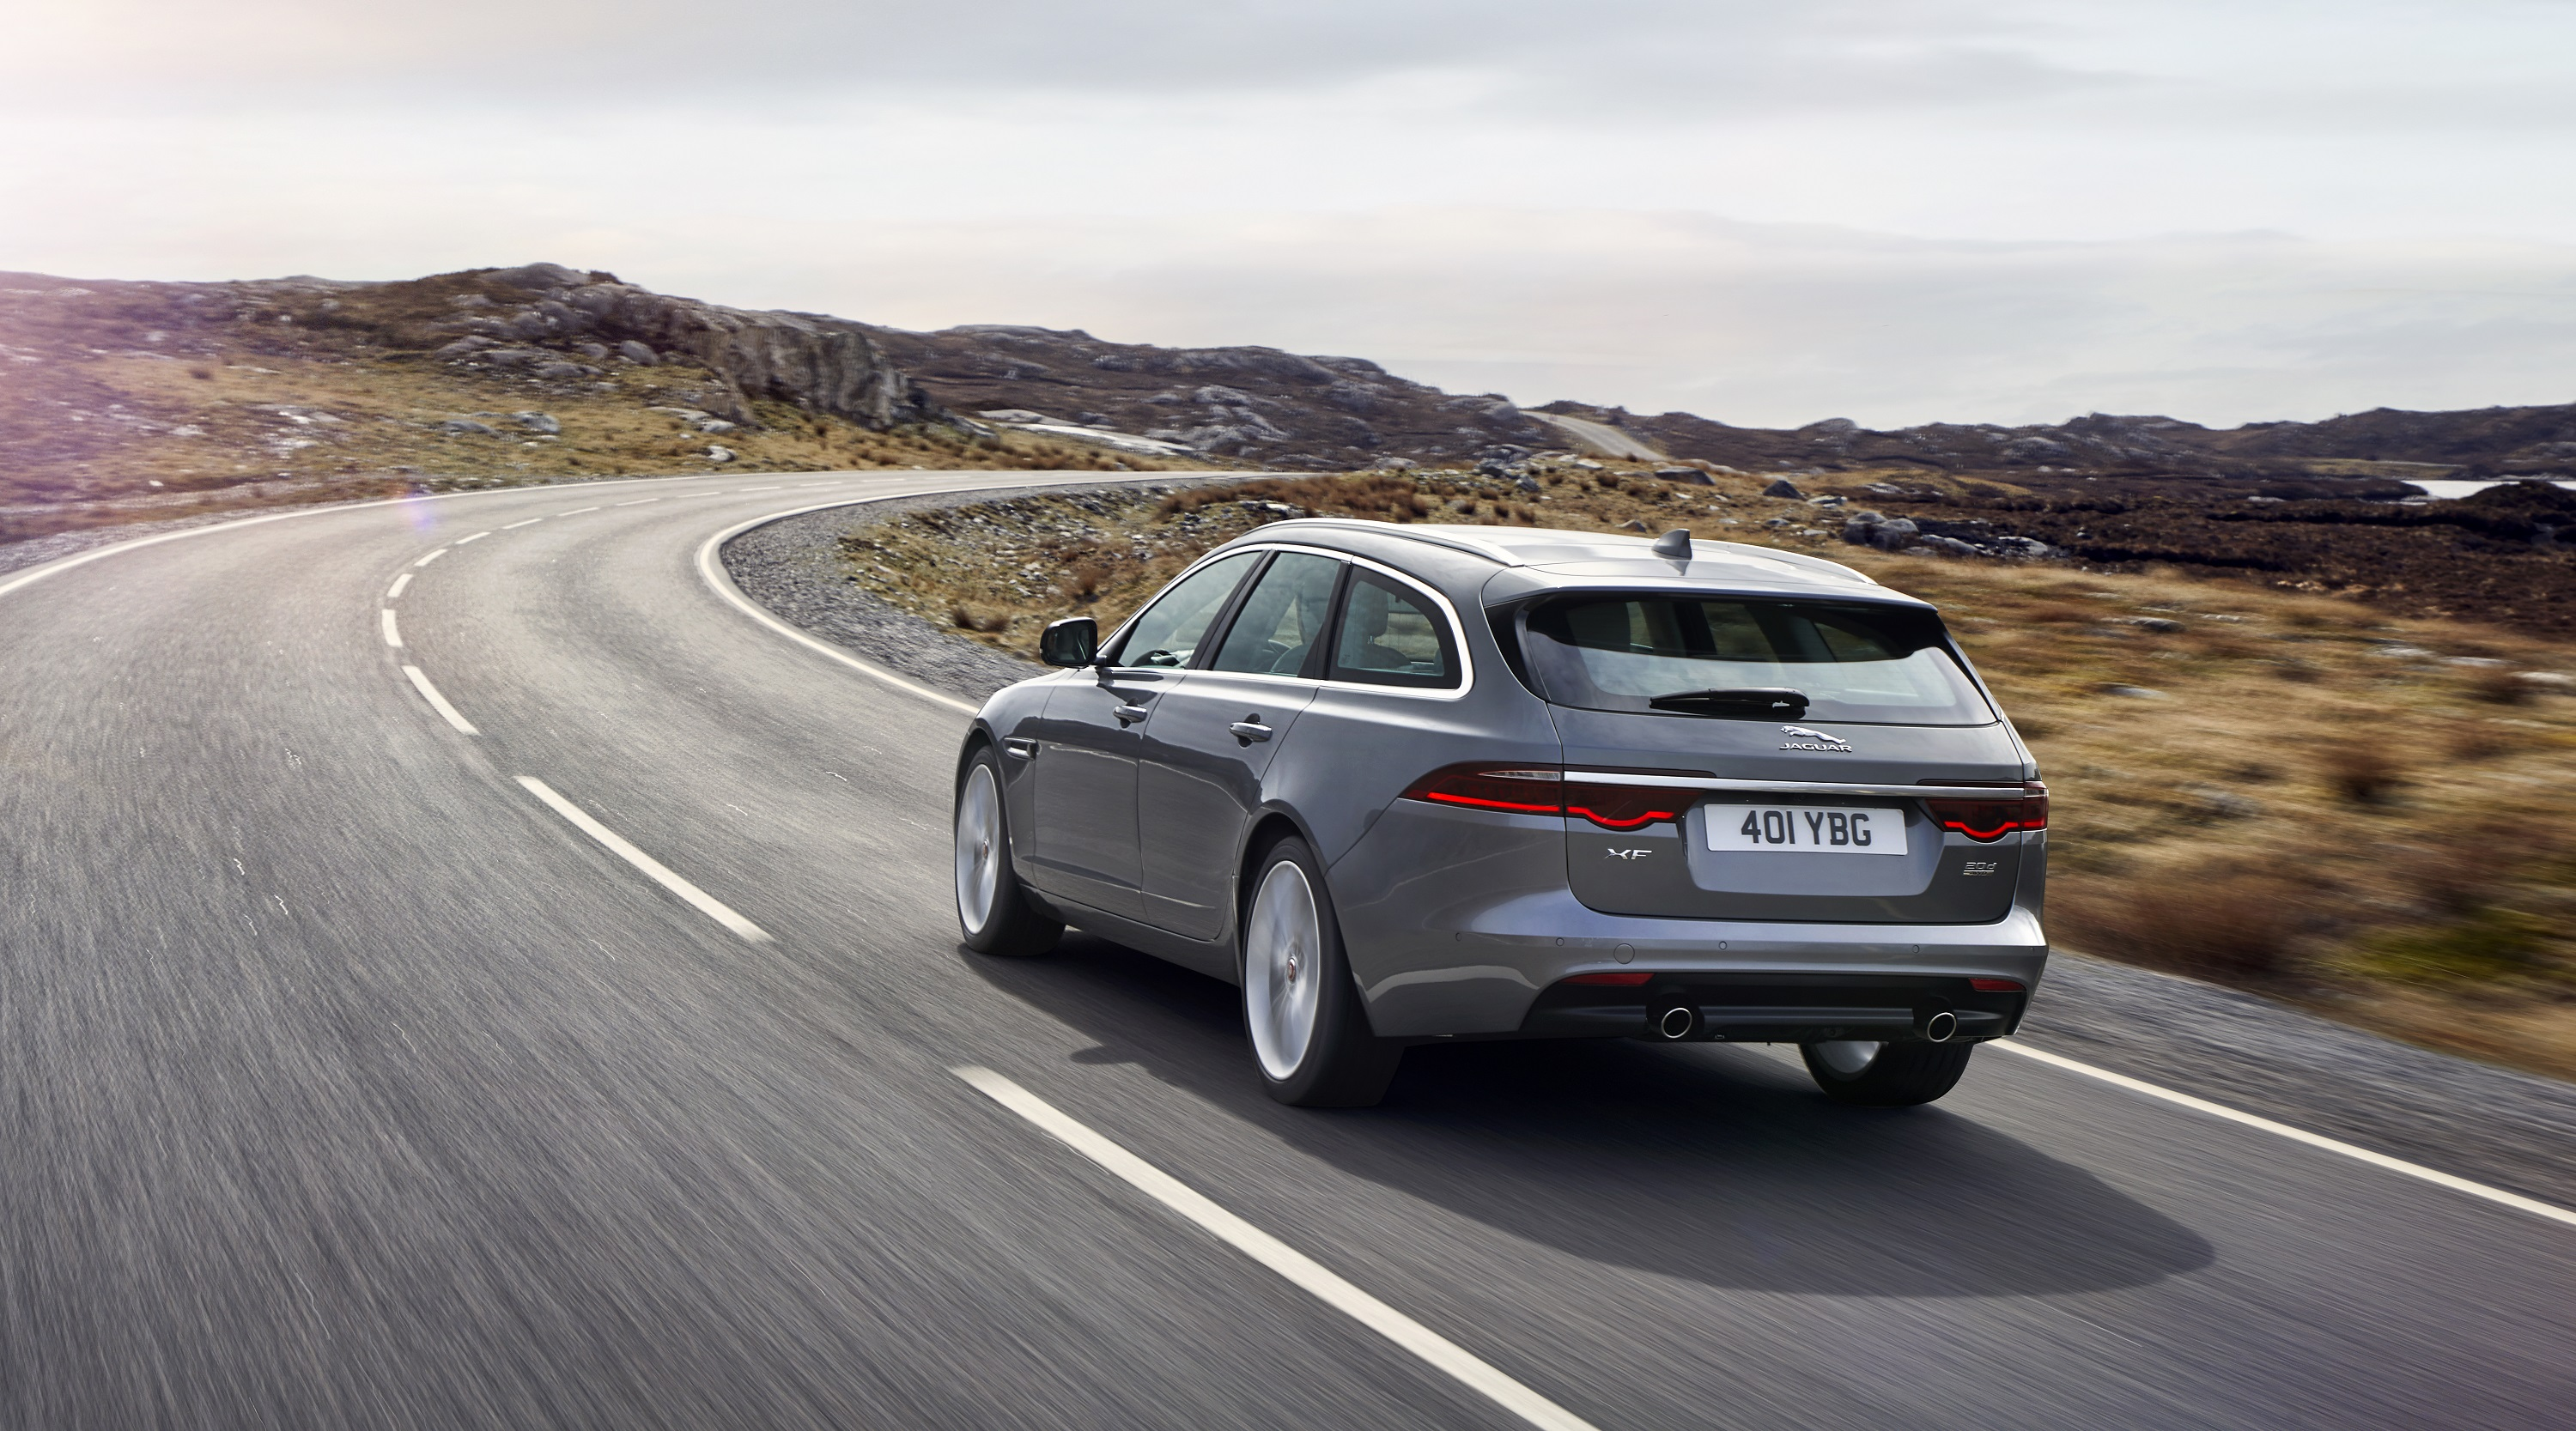 Manufacturer photo: The new 2018 XF Sportbrake is a premium wagon a compelling combination of design, driving dynamics and advanced technologies that make it a standout performer